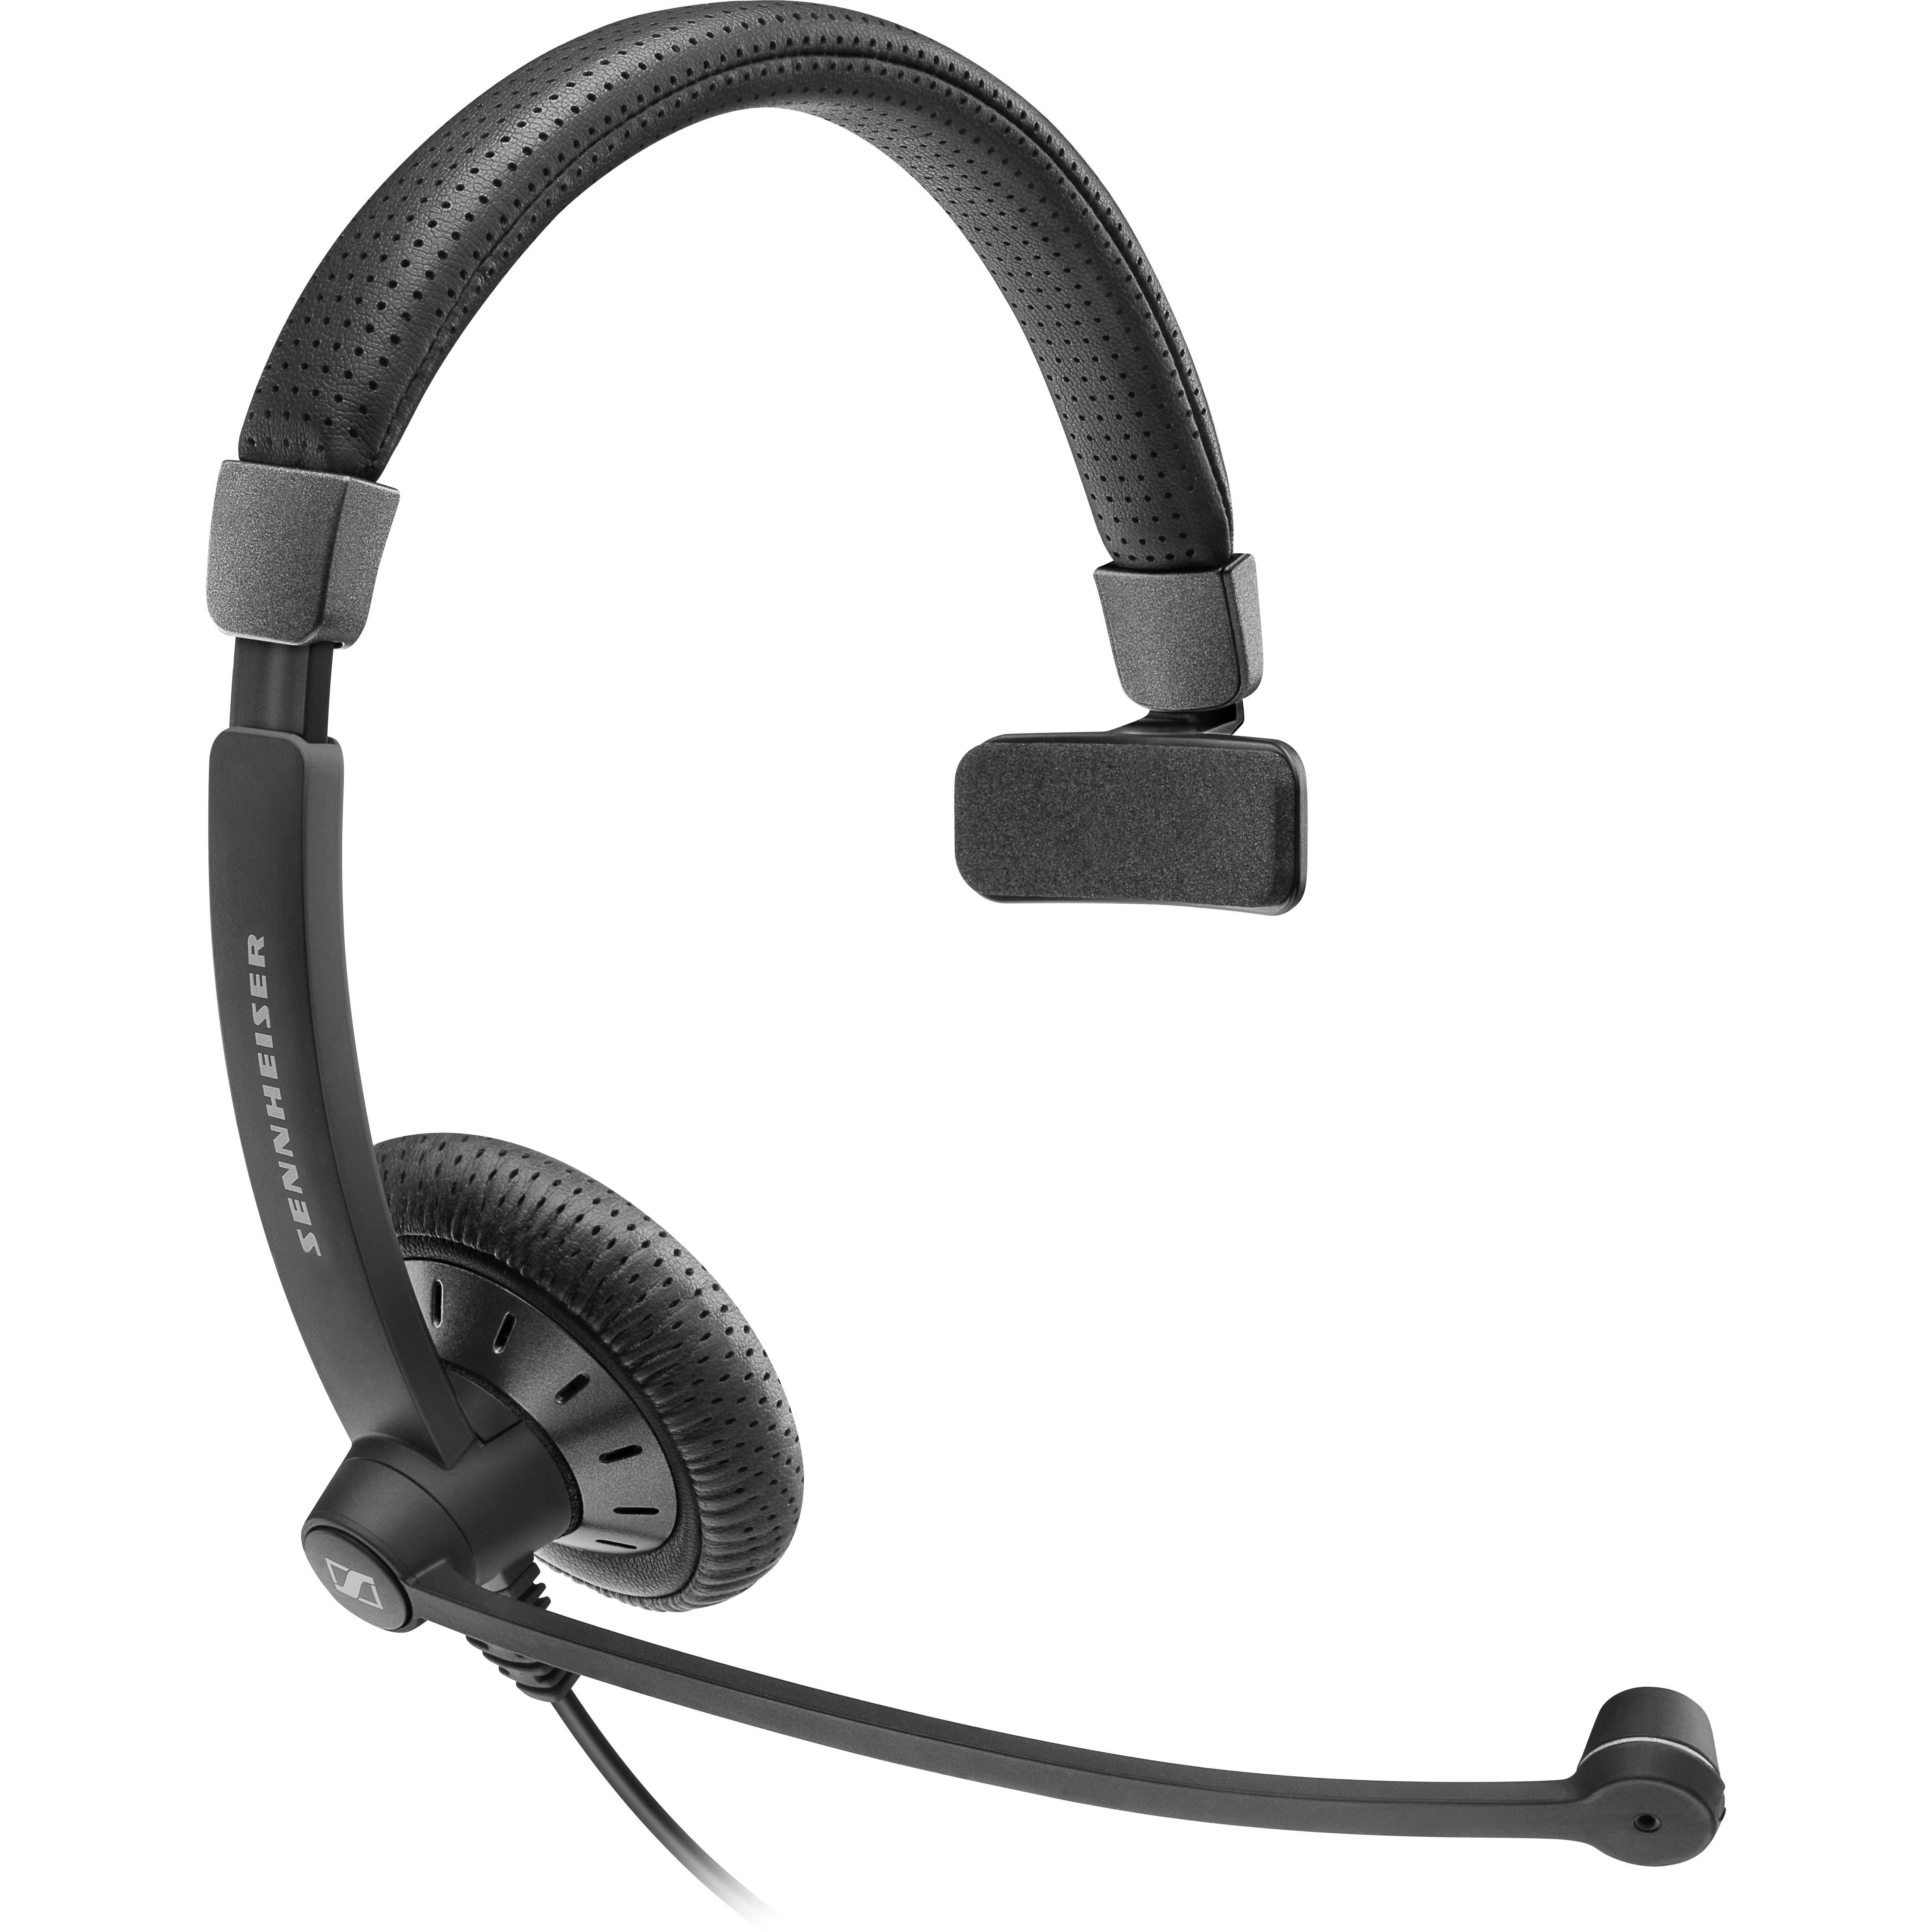 Sennheiser SC 45 USB MS Wired Stereo Headset - Over-the-head - Supra-aural - Black